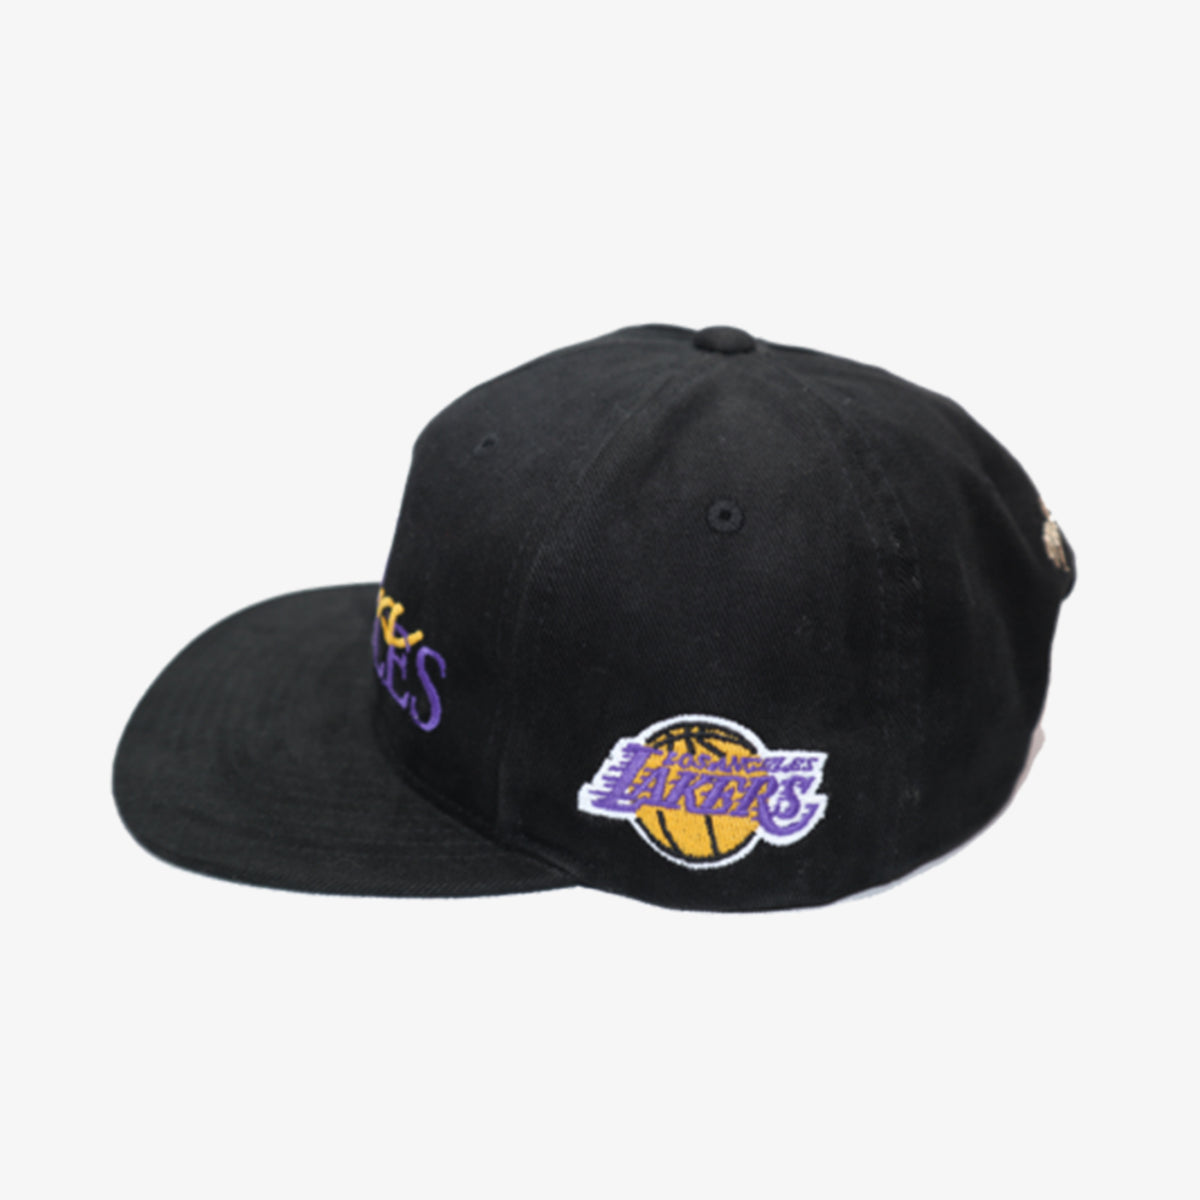 Los Angeles Lakers 3-2 Zone Deadstock Snapback - Black